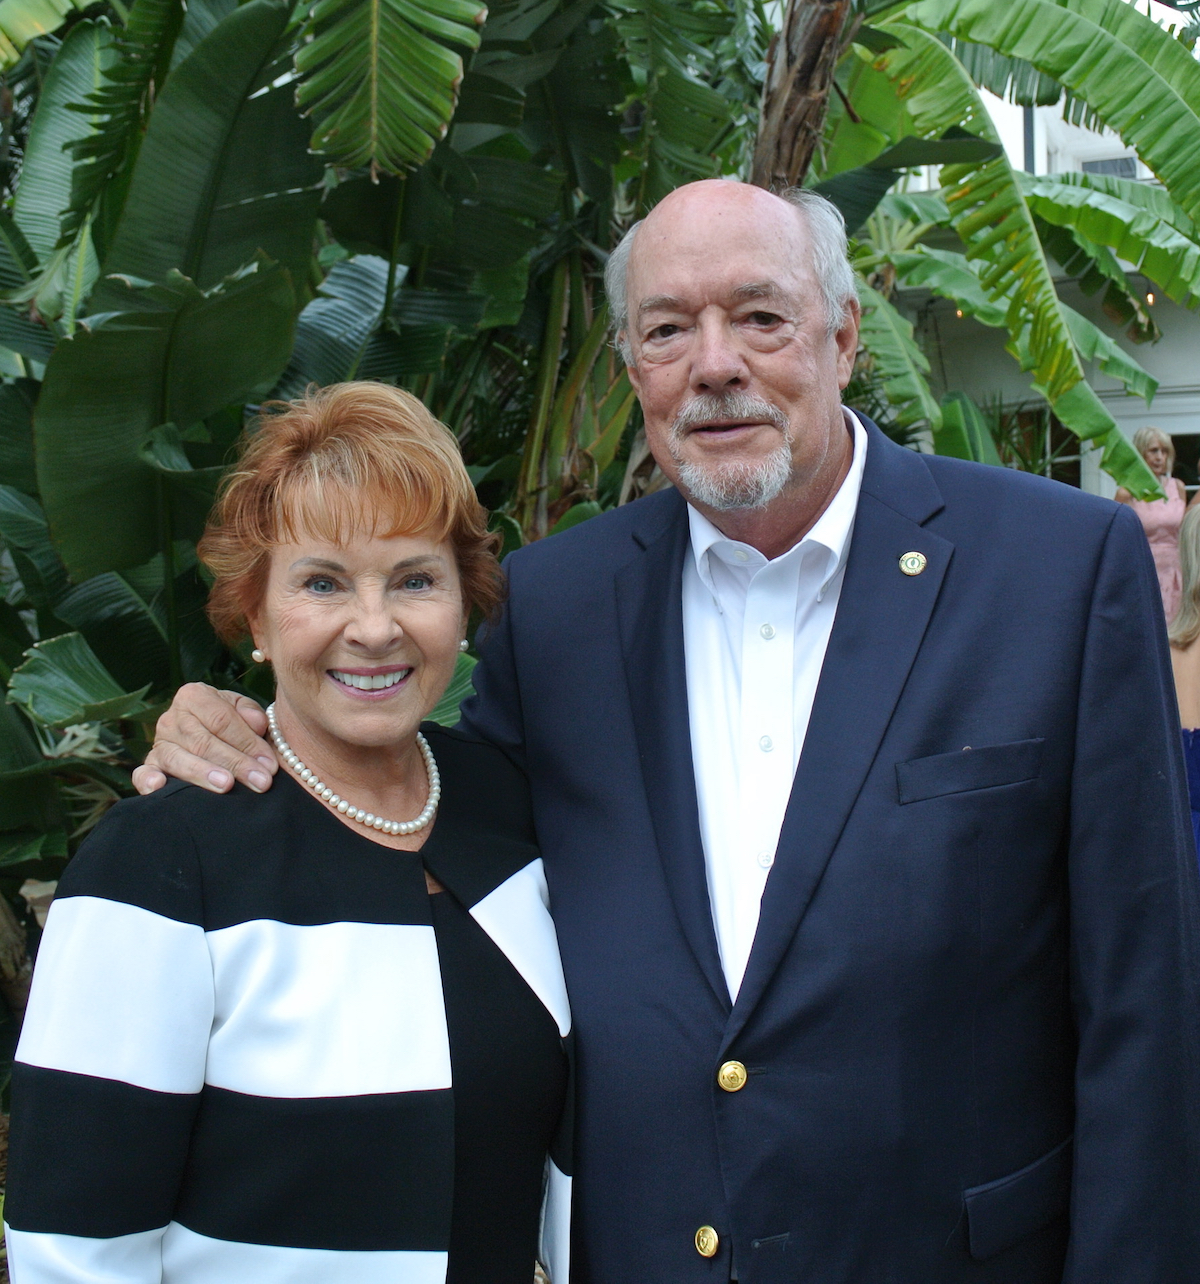 For the second year in a row, Michael Martin (r), Florida Gulf Coast University President, and his wife, Jan Martin (l), will serve as honorary chairs of Valerie's House Sunset Soirée.